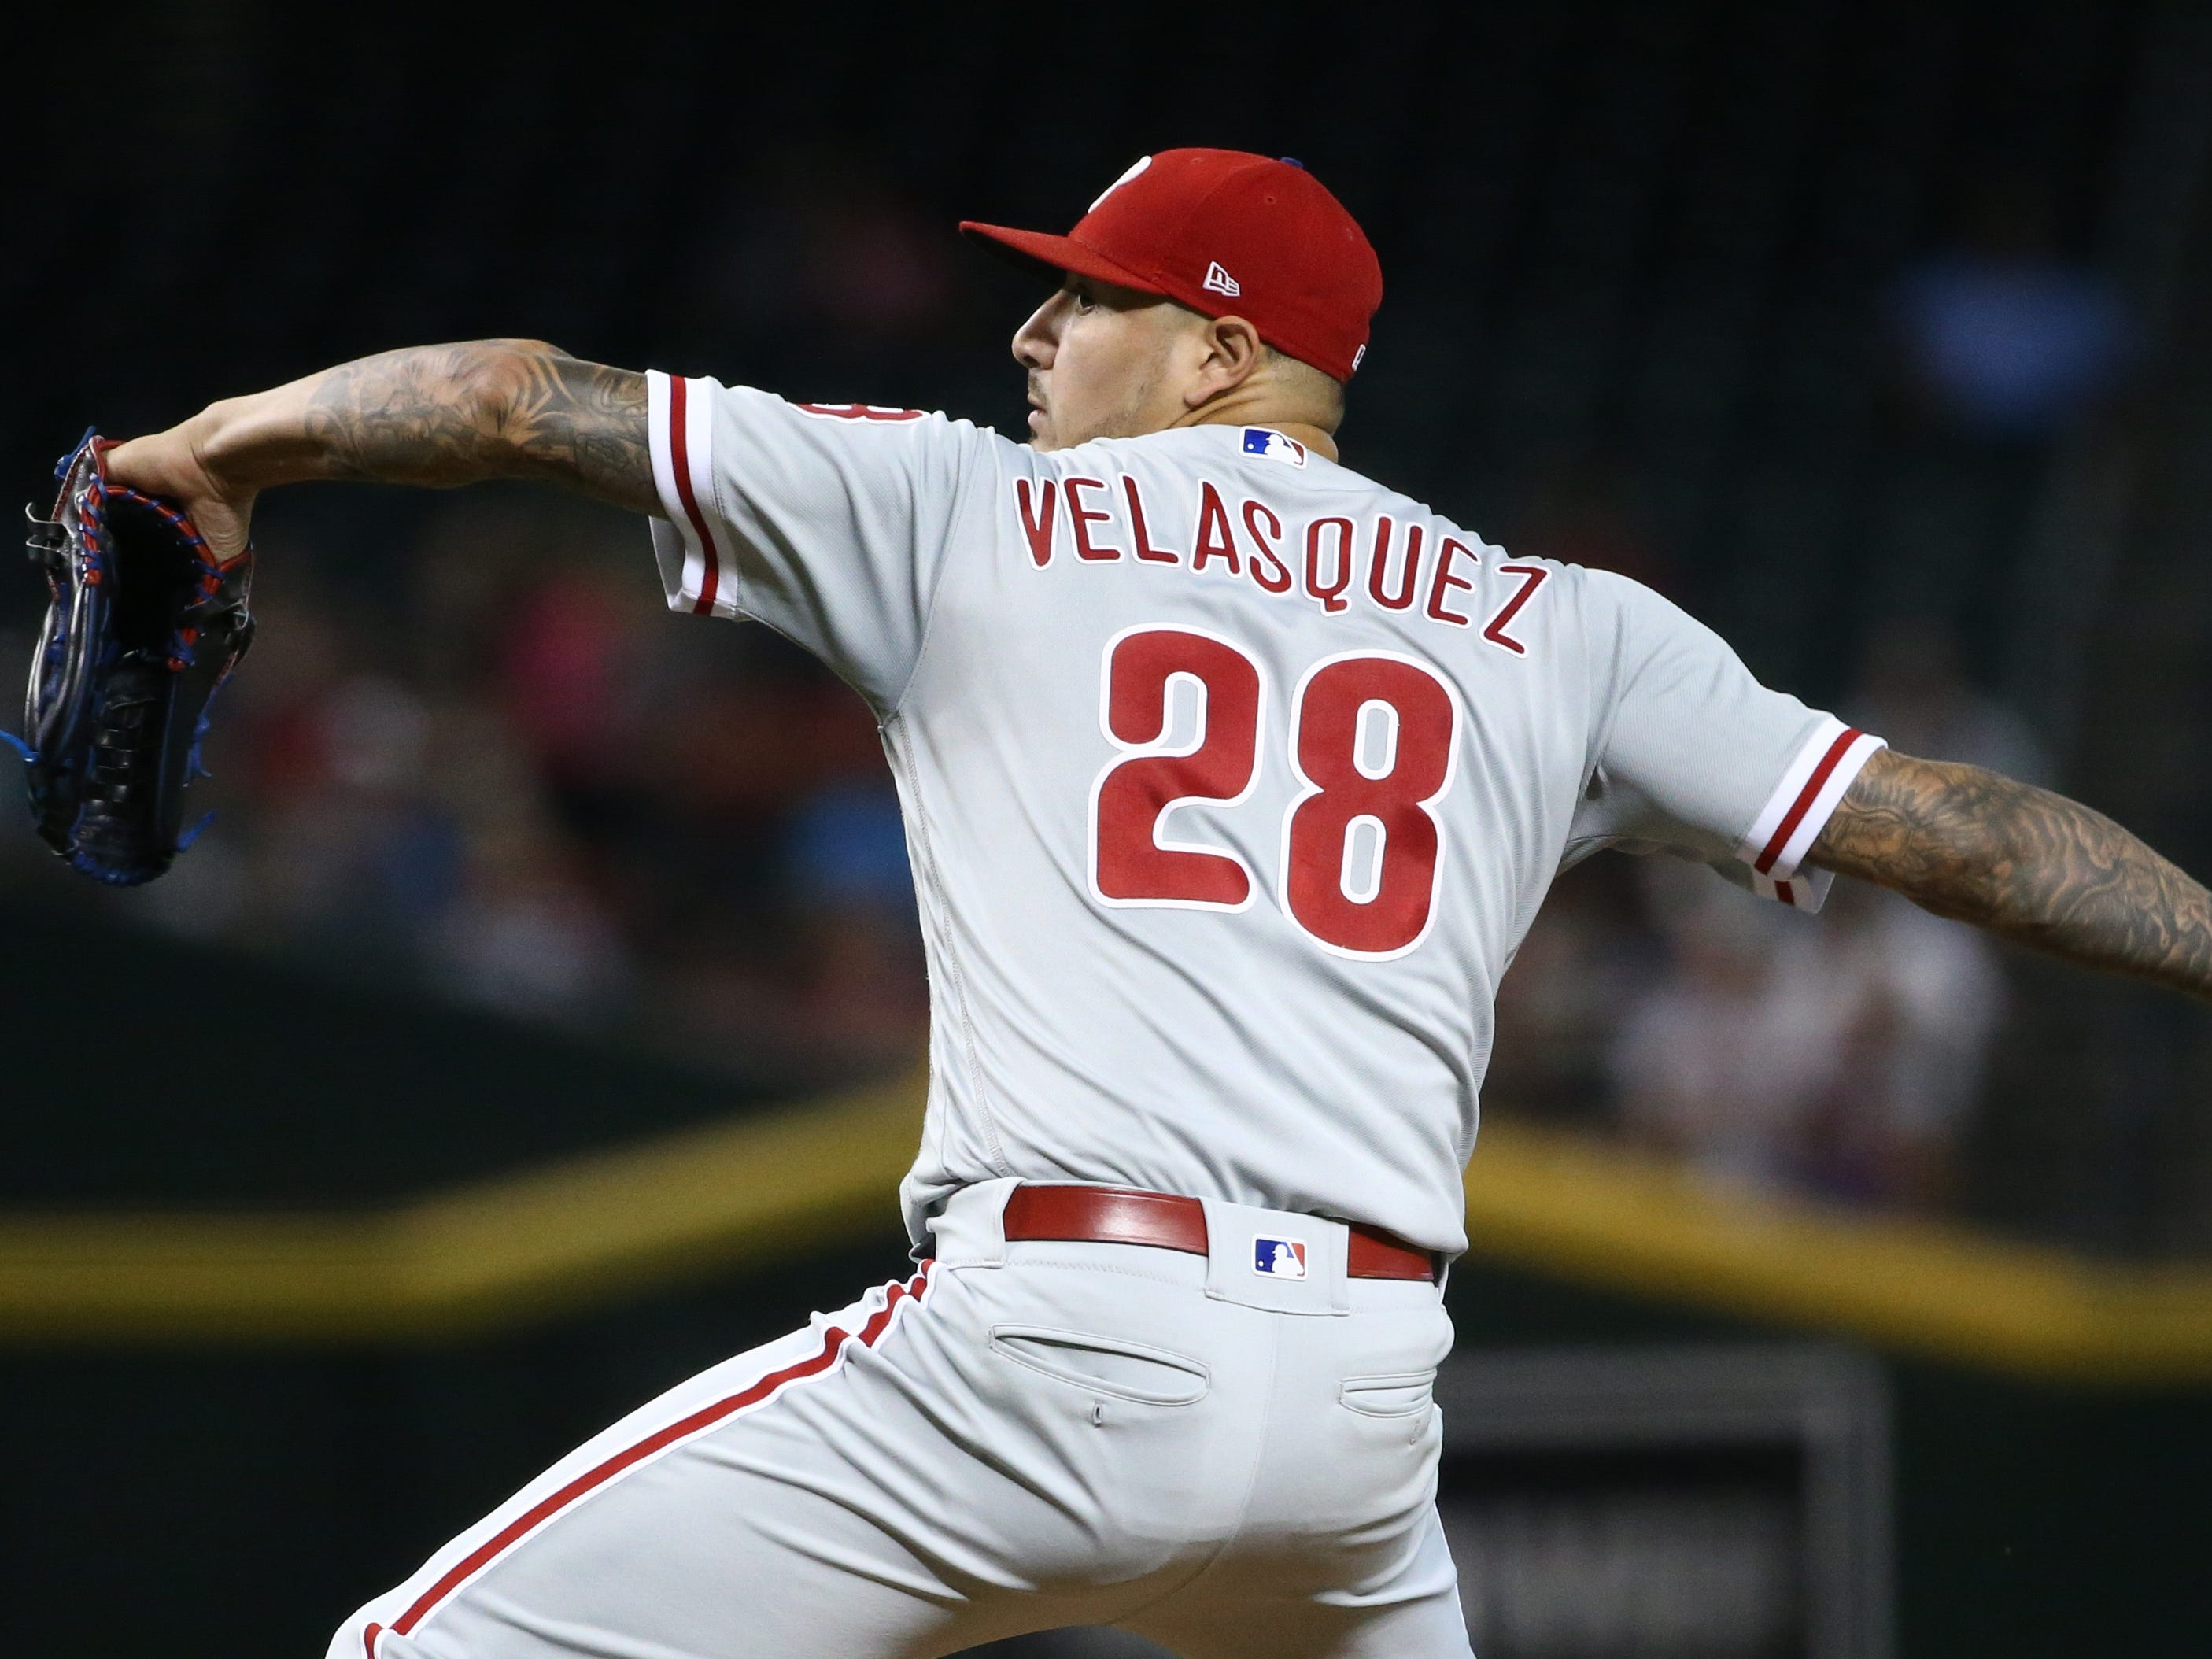 Philadelphia Phillies pitcher Vince Velasquez throws to the Arizona Diamondbacks in the first inning on Aug. 8, 2018, at Chase Field in Phoenix, Ariz.